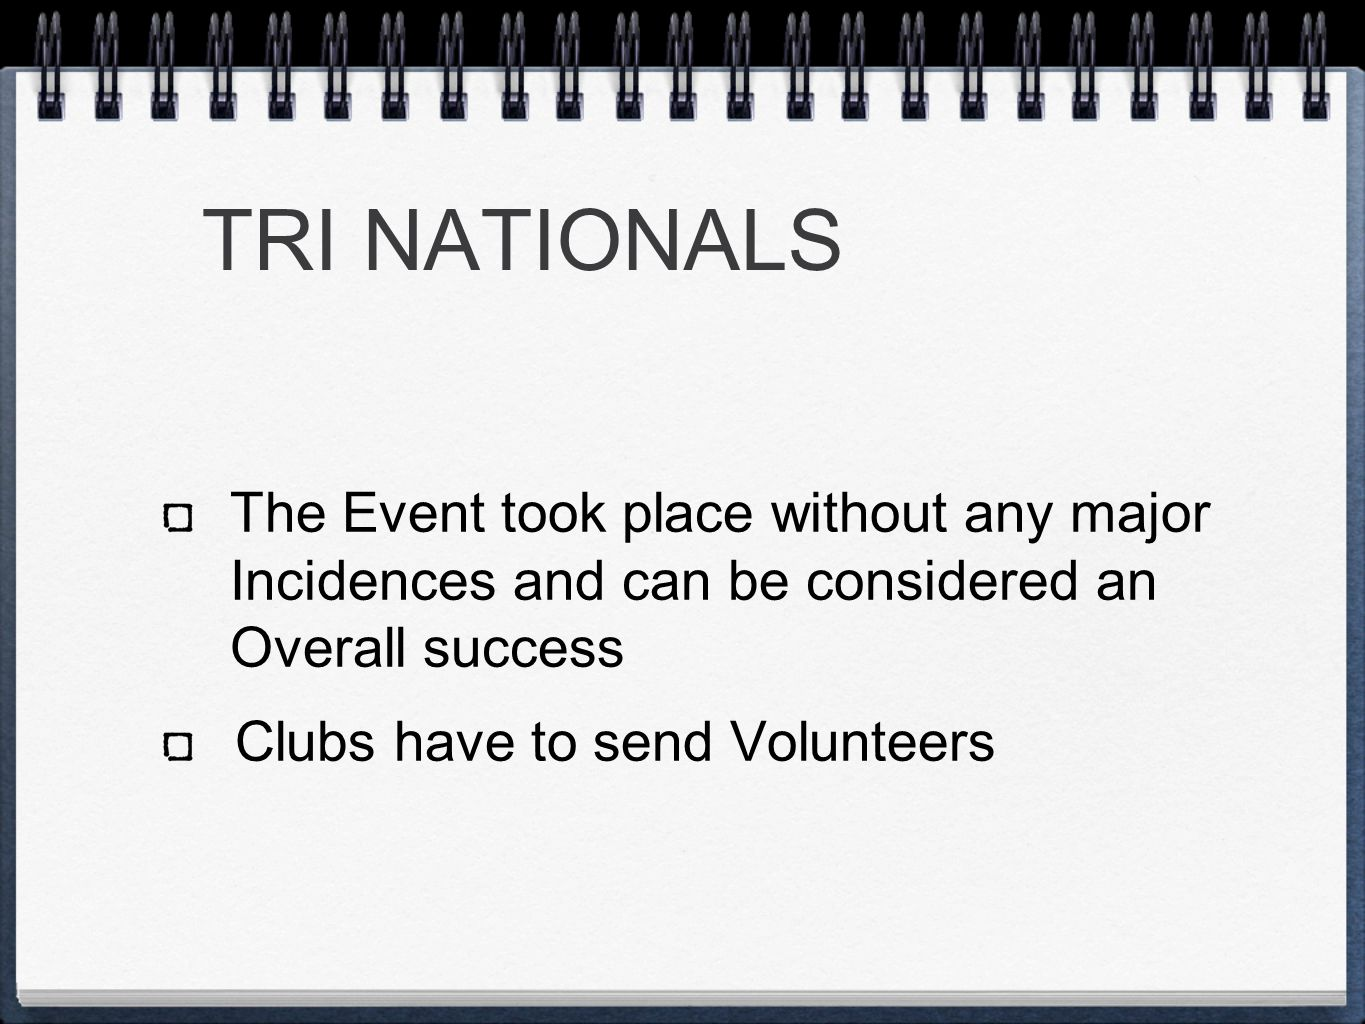 TRI NATIONALS The Event took place without any major Incidences and can be considered an Overall success Clubs have to send Volunteers